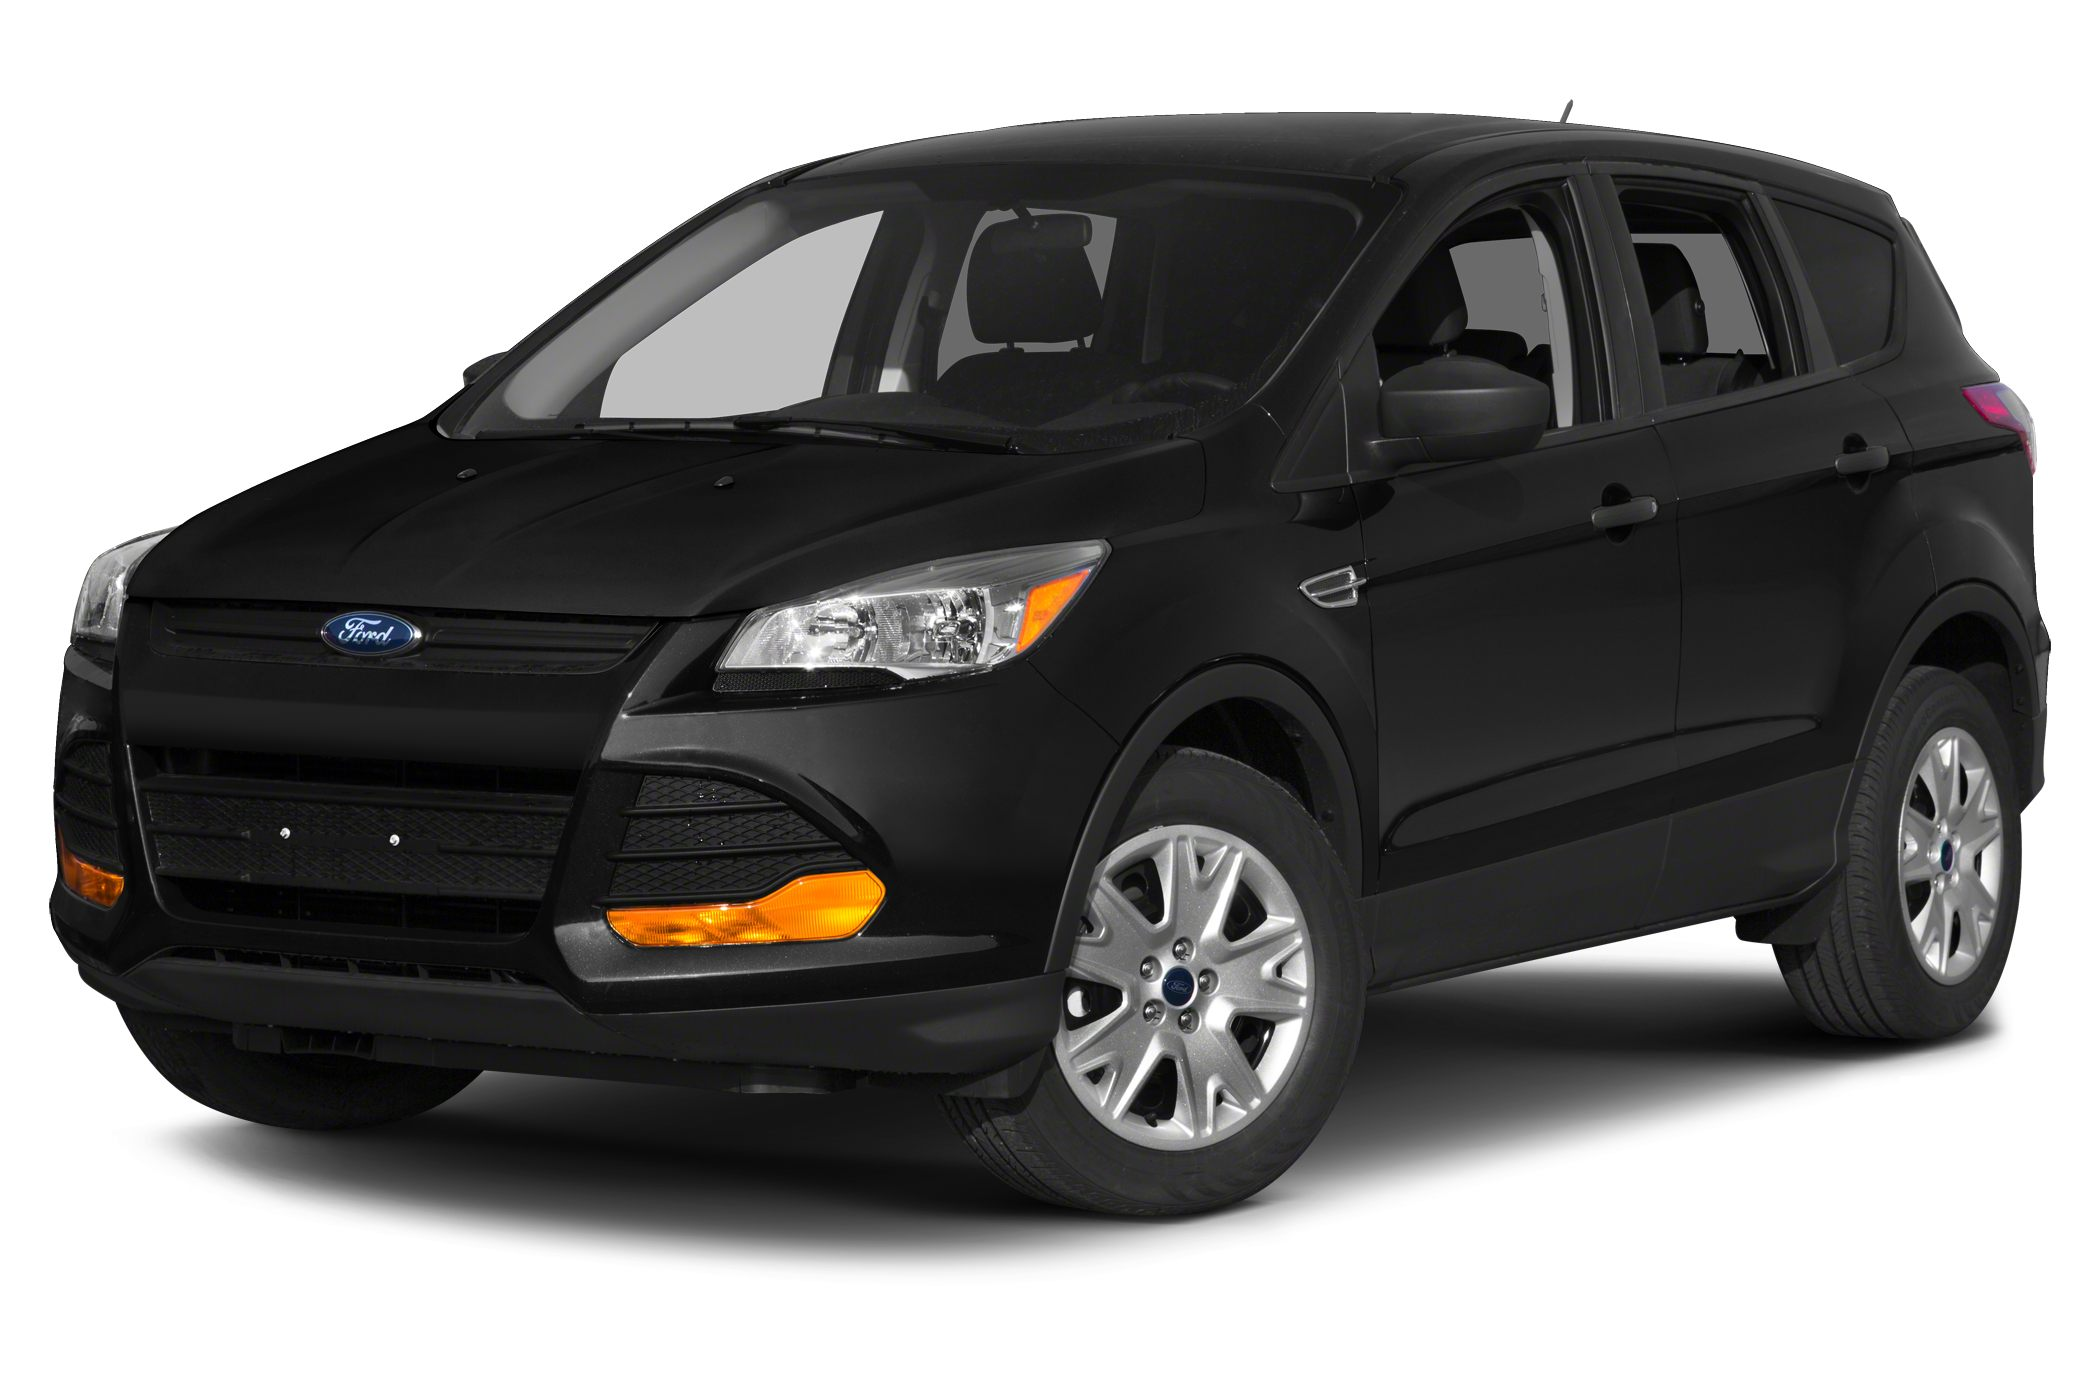 2014 Ford Escape SE SUV for sale in Castle Rock for $29,740 with 11 miles.